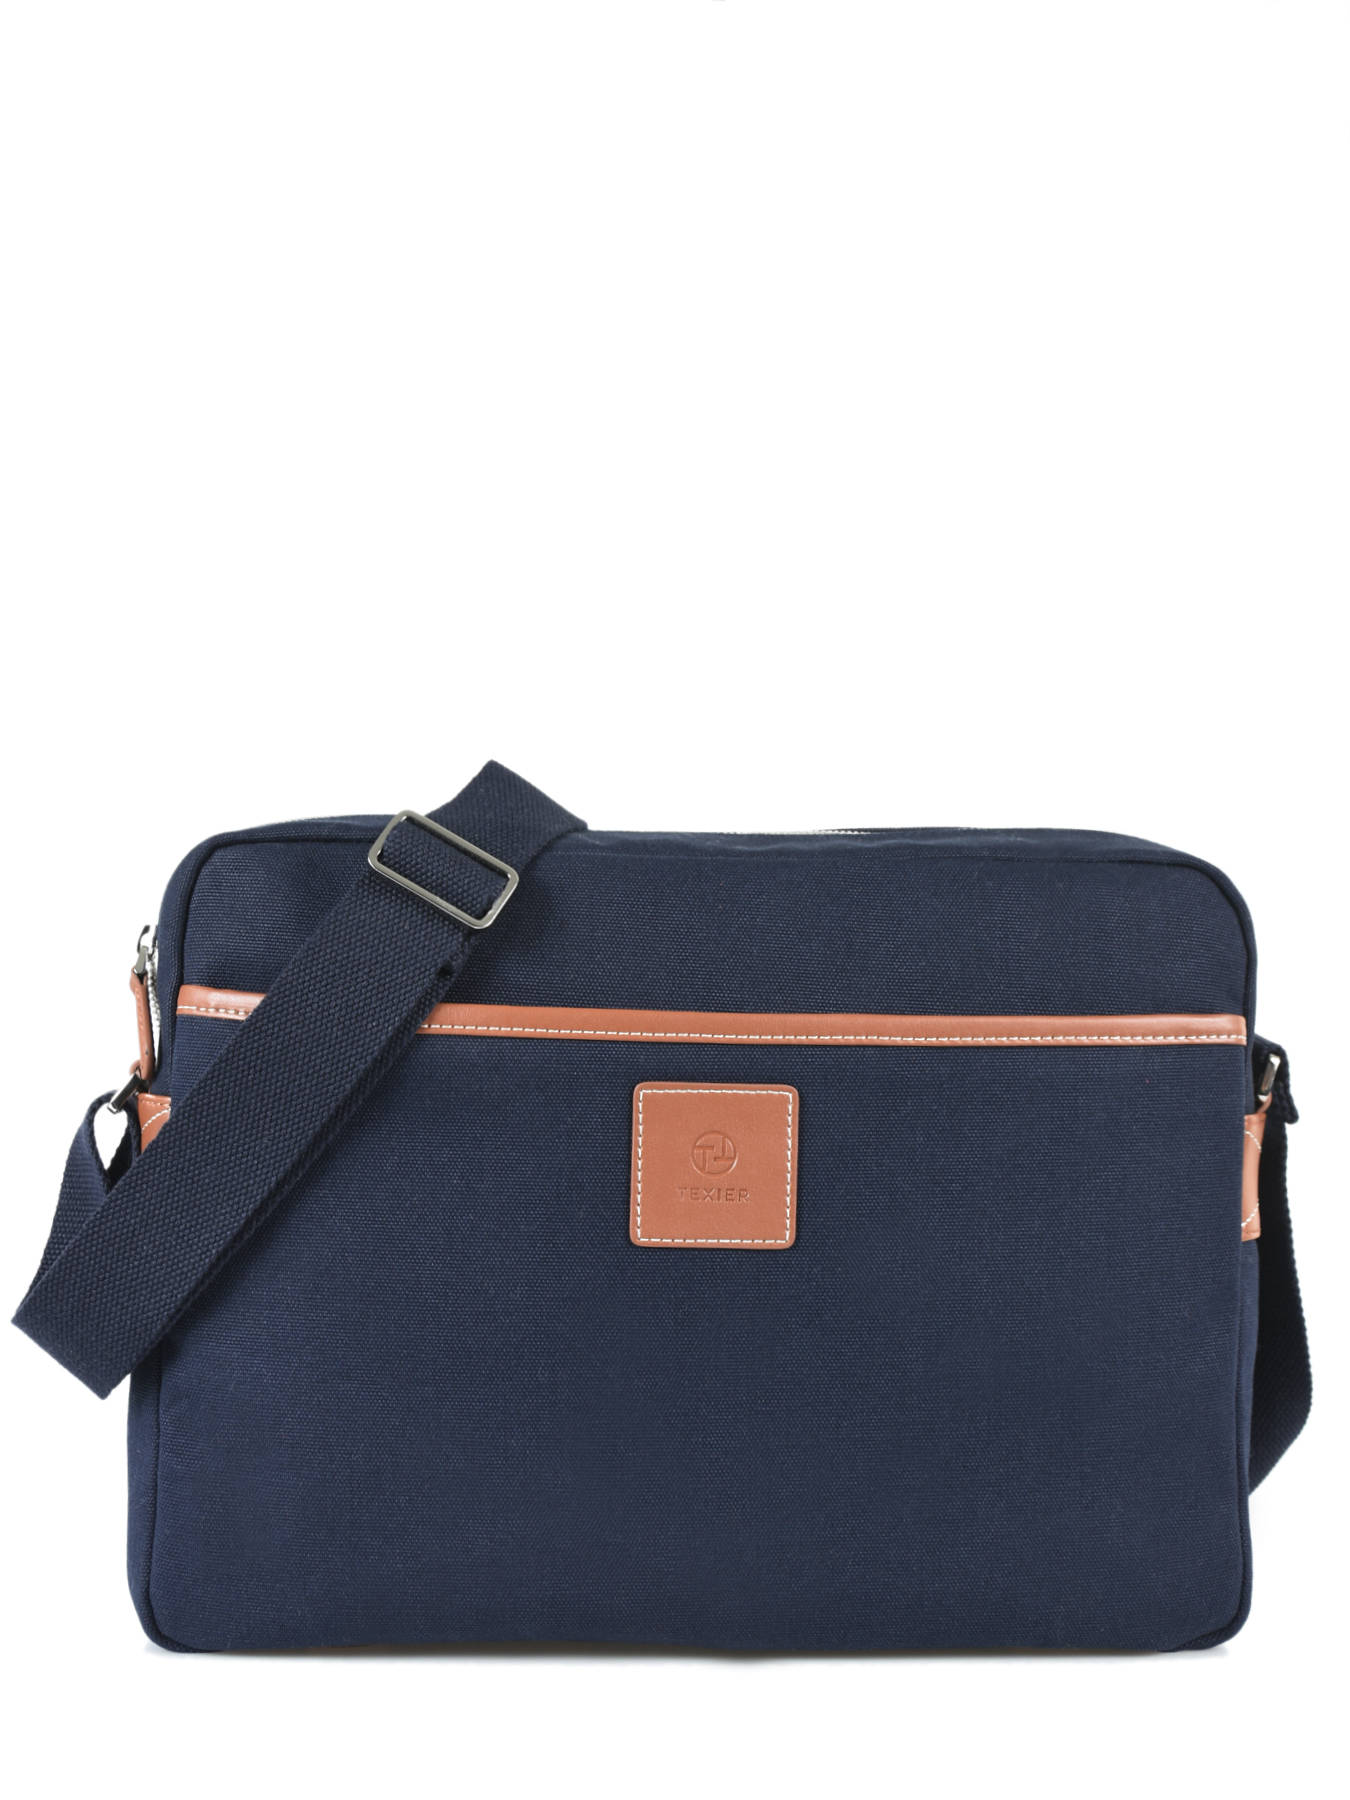 Messenger Bag Texier Blue Aristide 42104